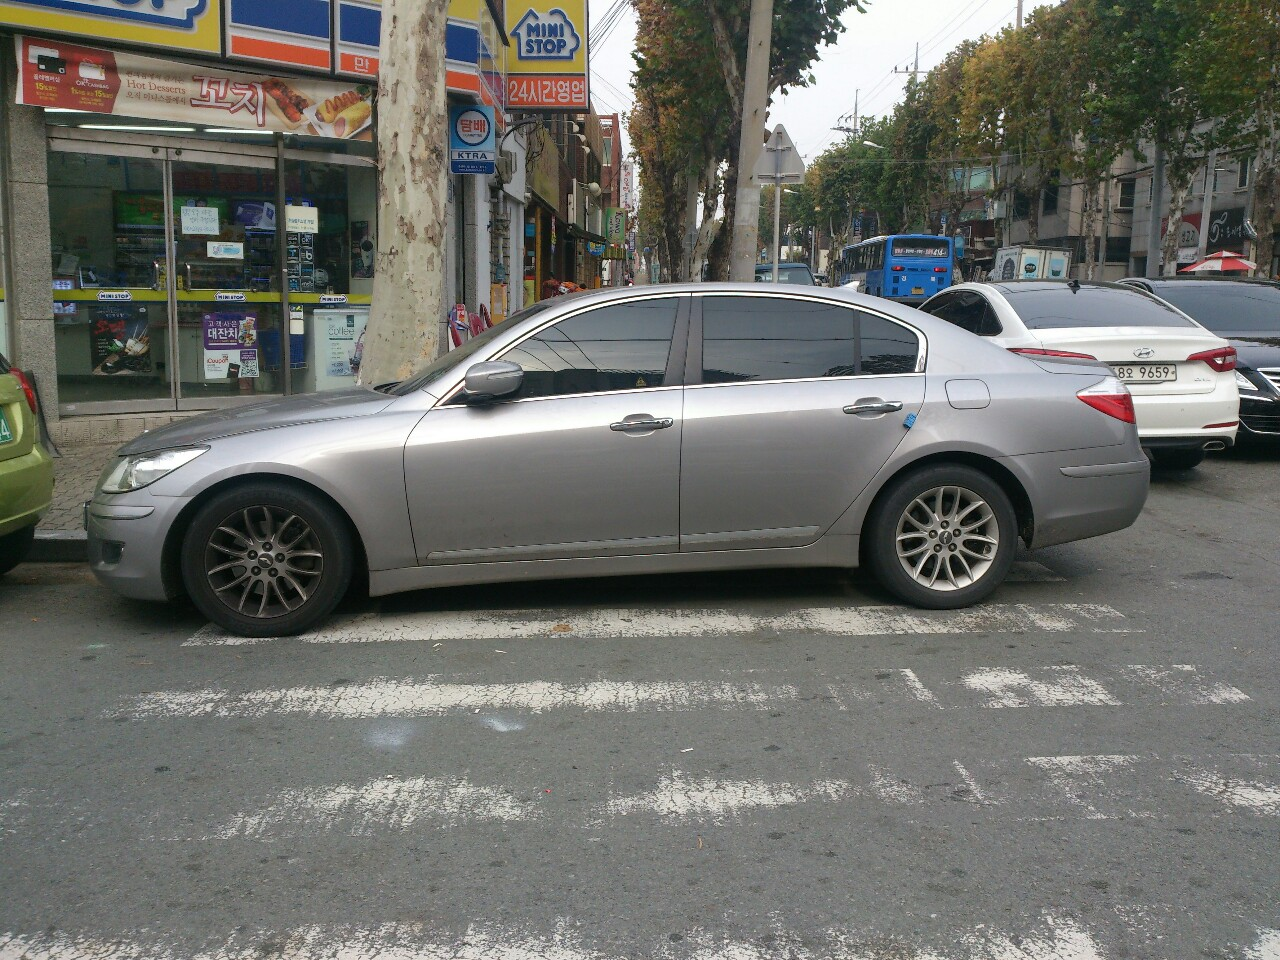 Parking on Crosswalk